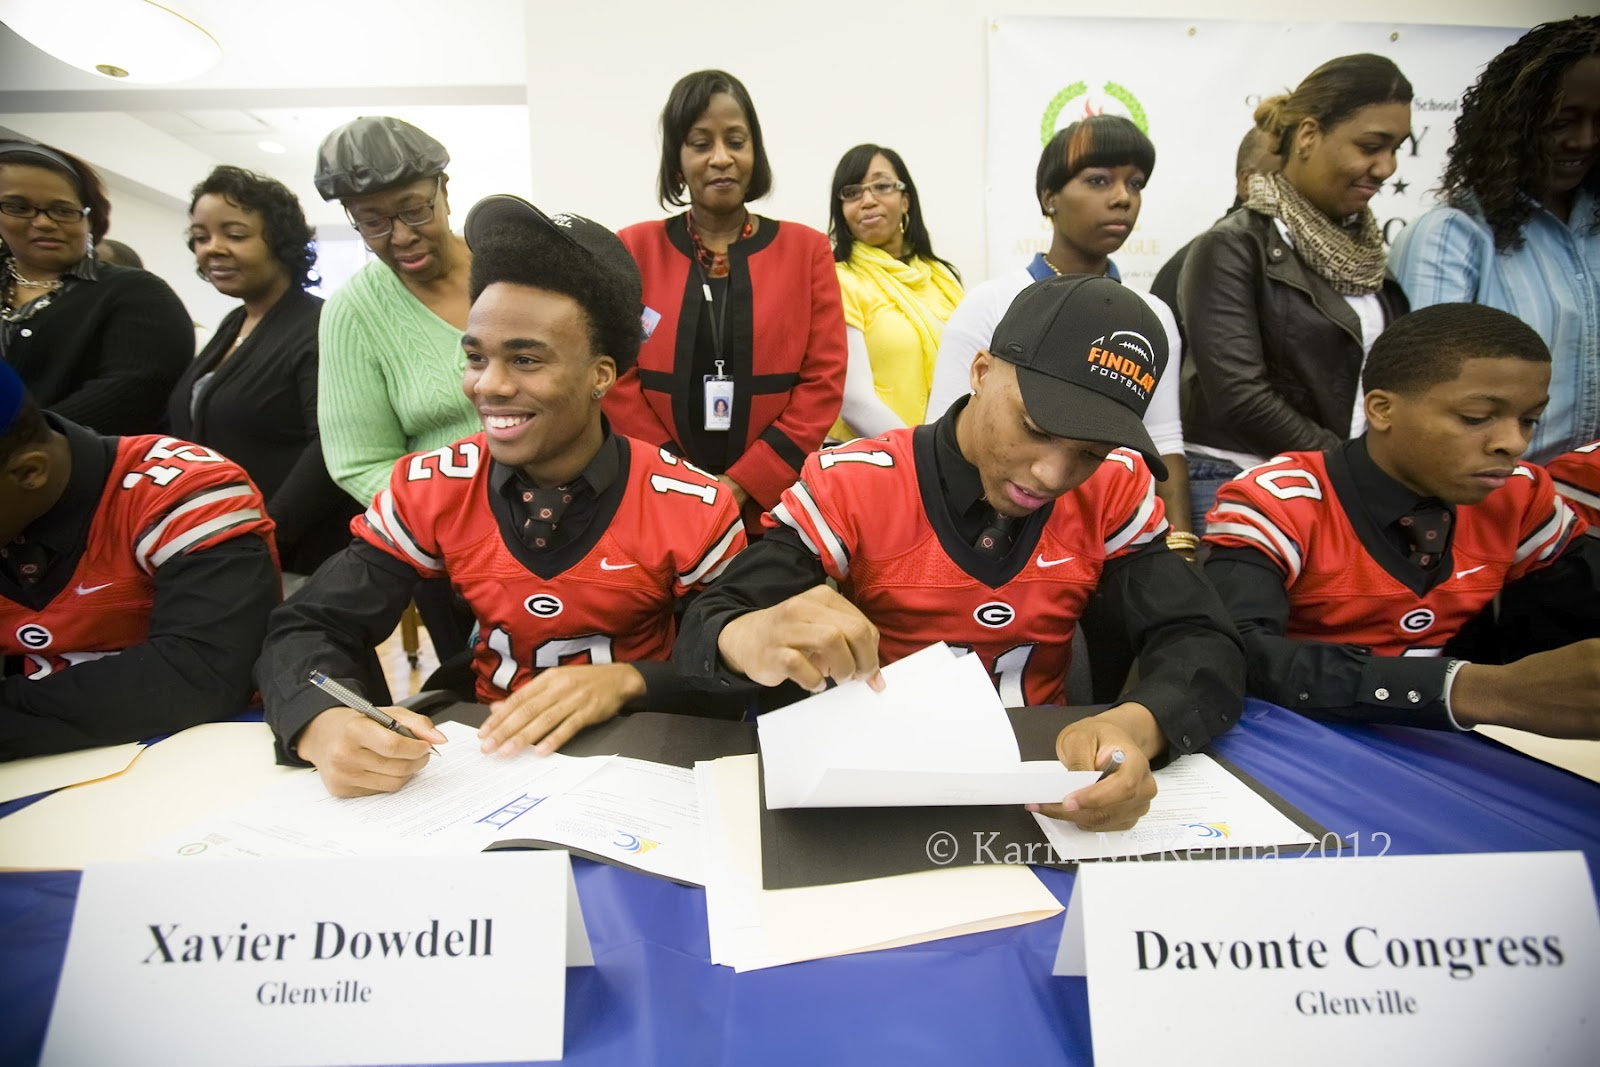 pdes signing day 2012 - HD1600×1067